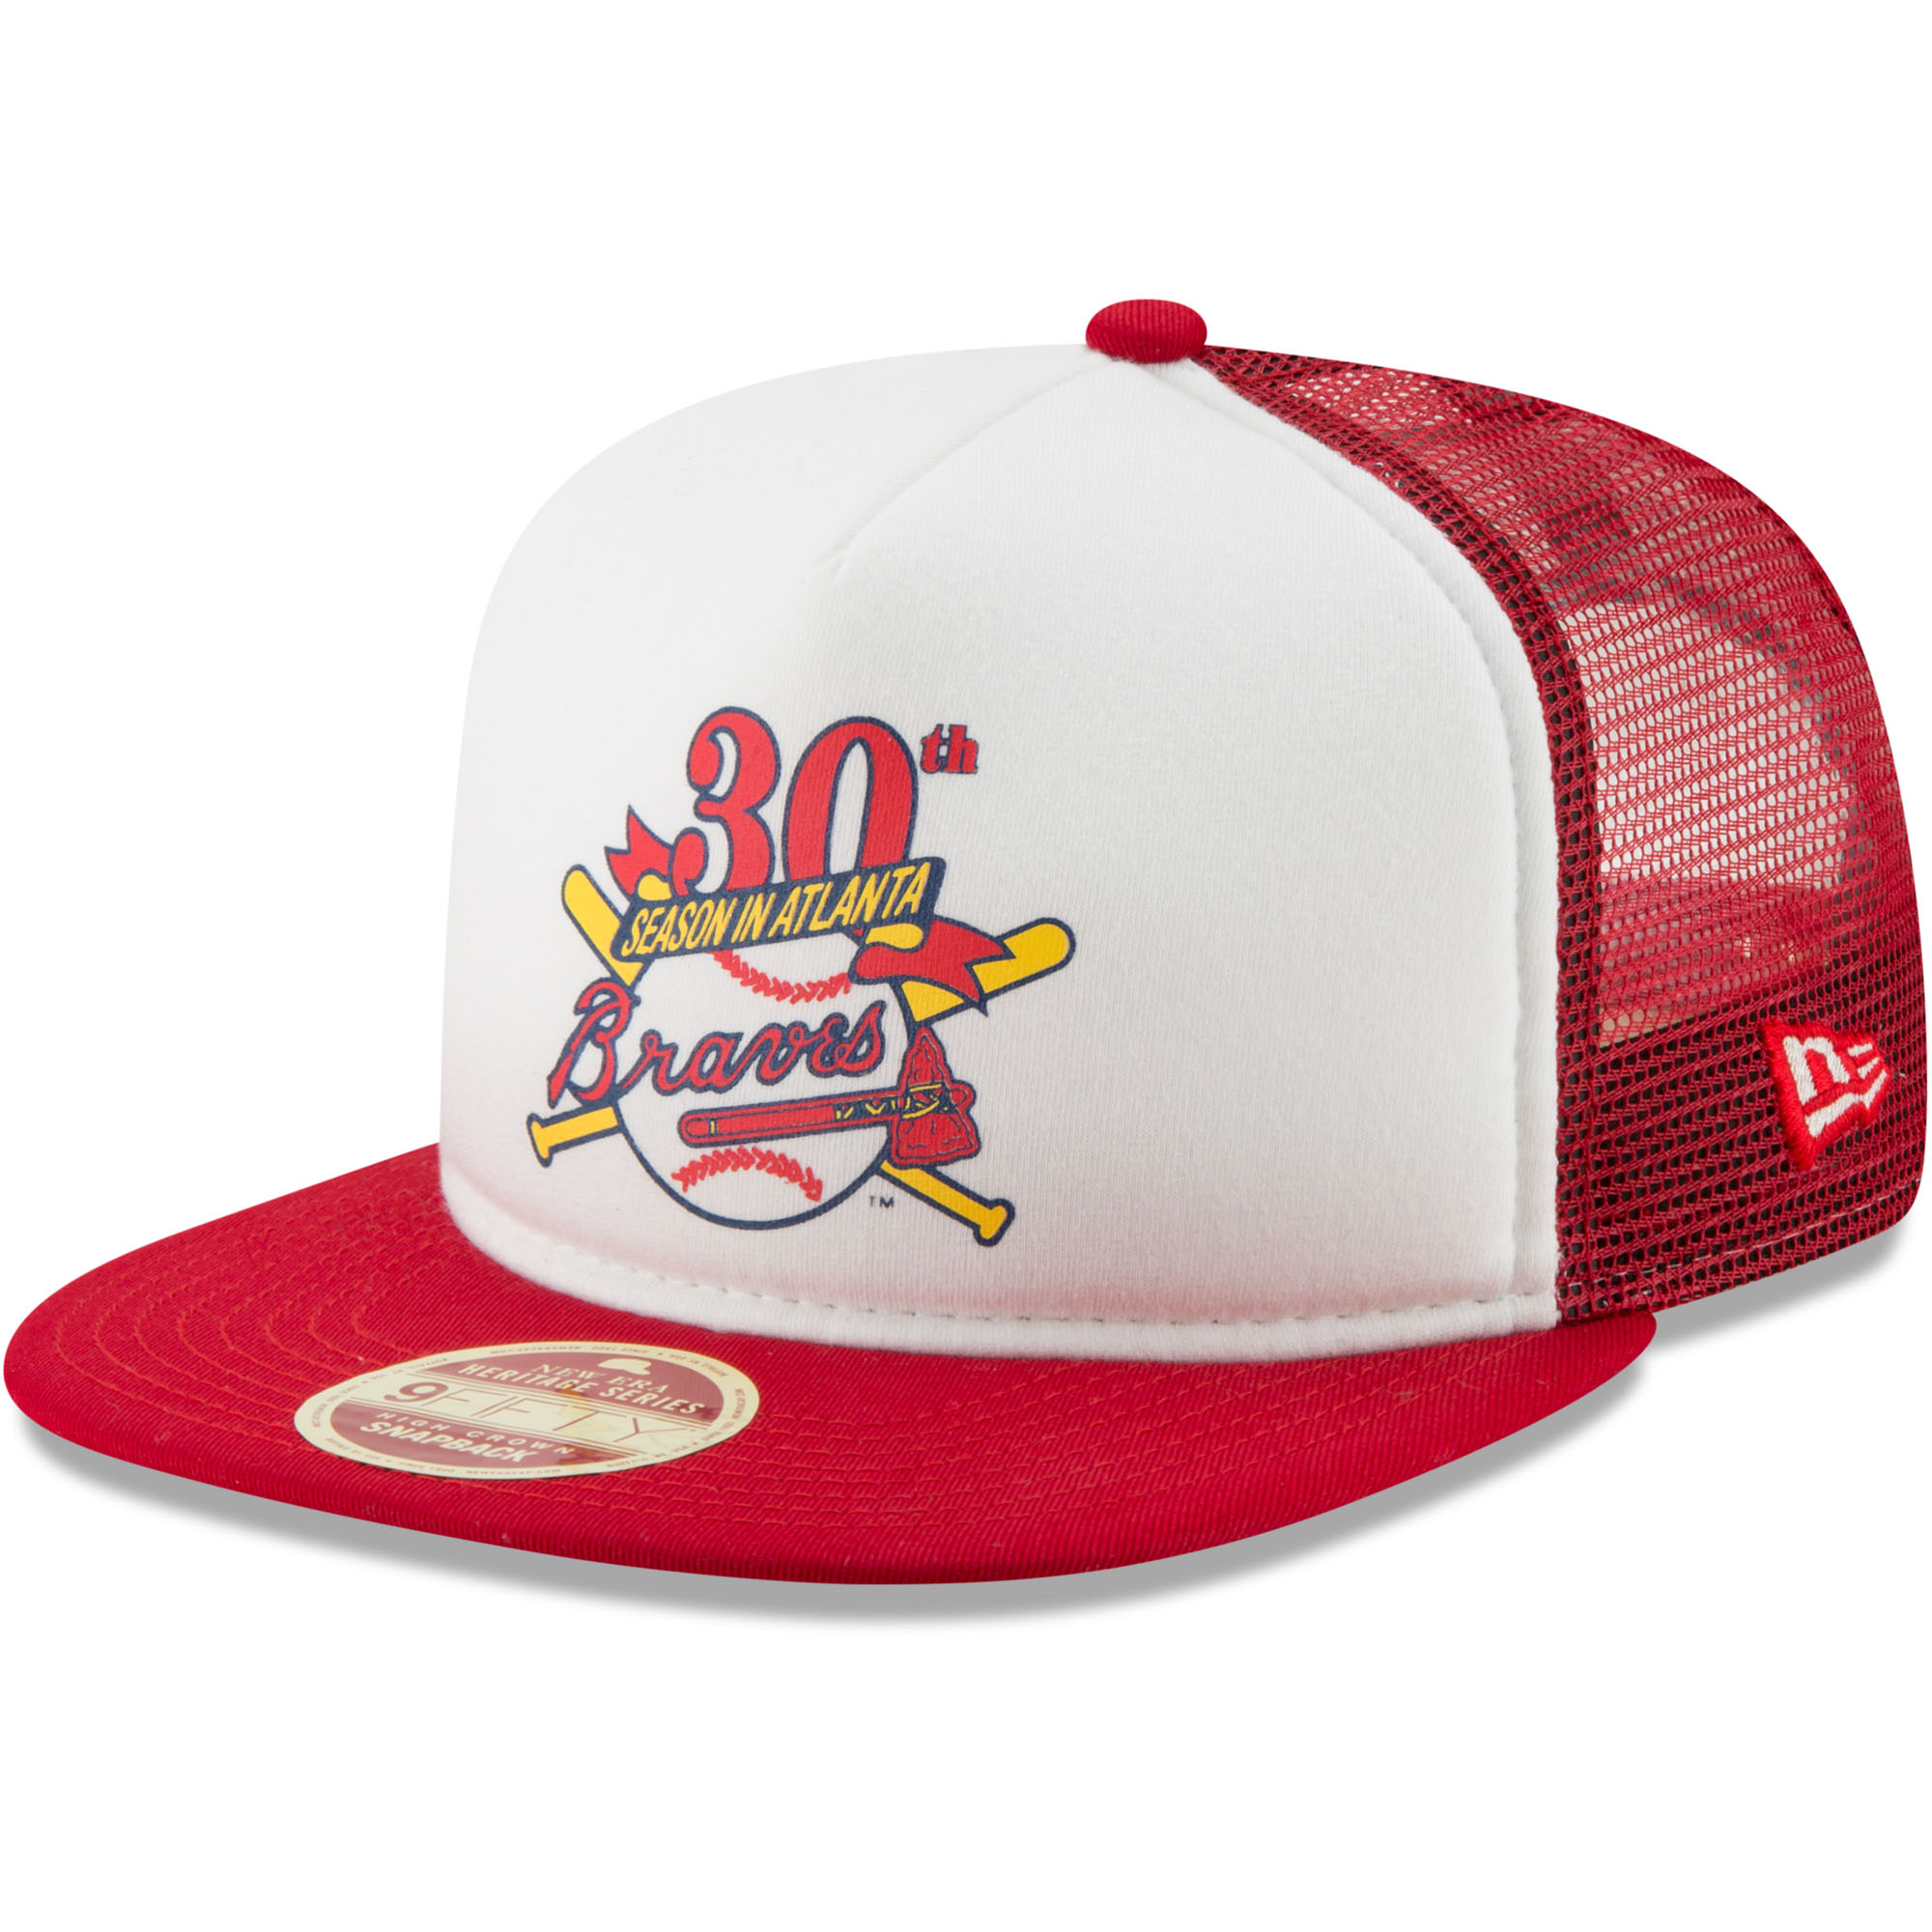 Atlanta Braves New Era Cooperstown Collection Foam Trucker 9FIFTY Snapback Adjustable Hat - White/Red - OSFA